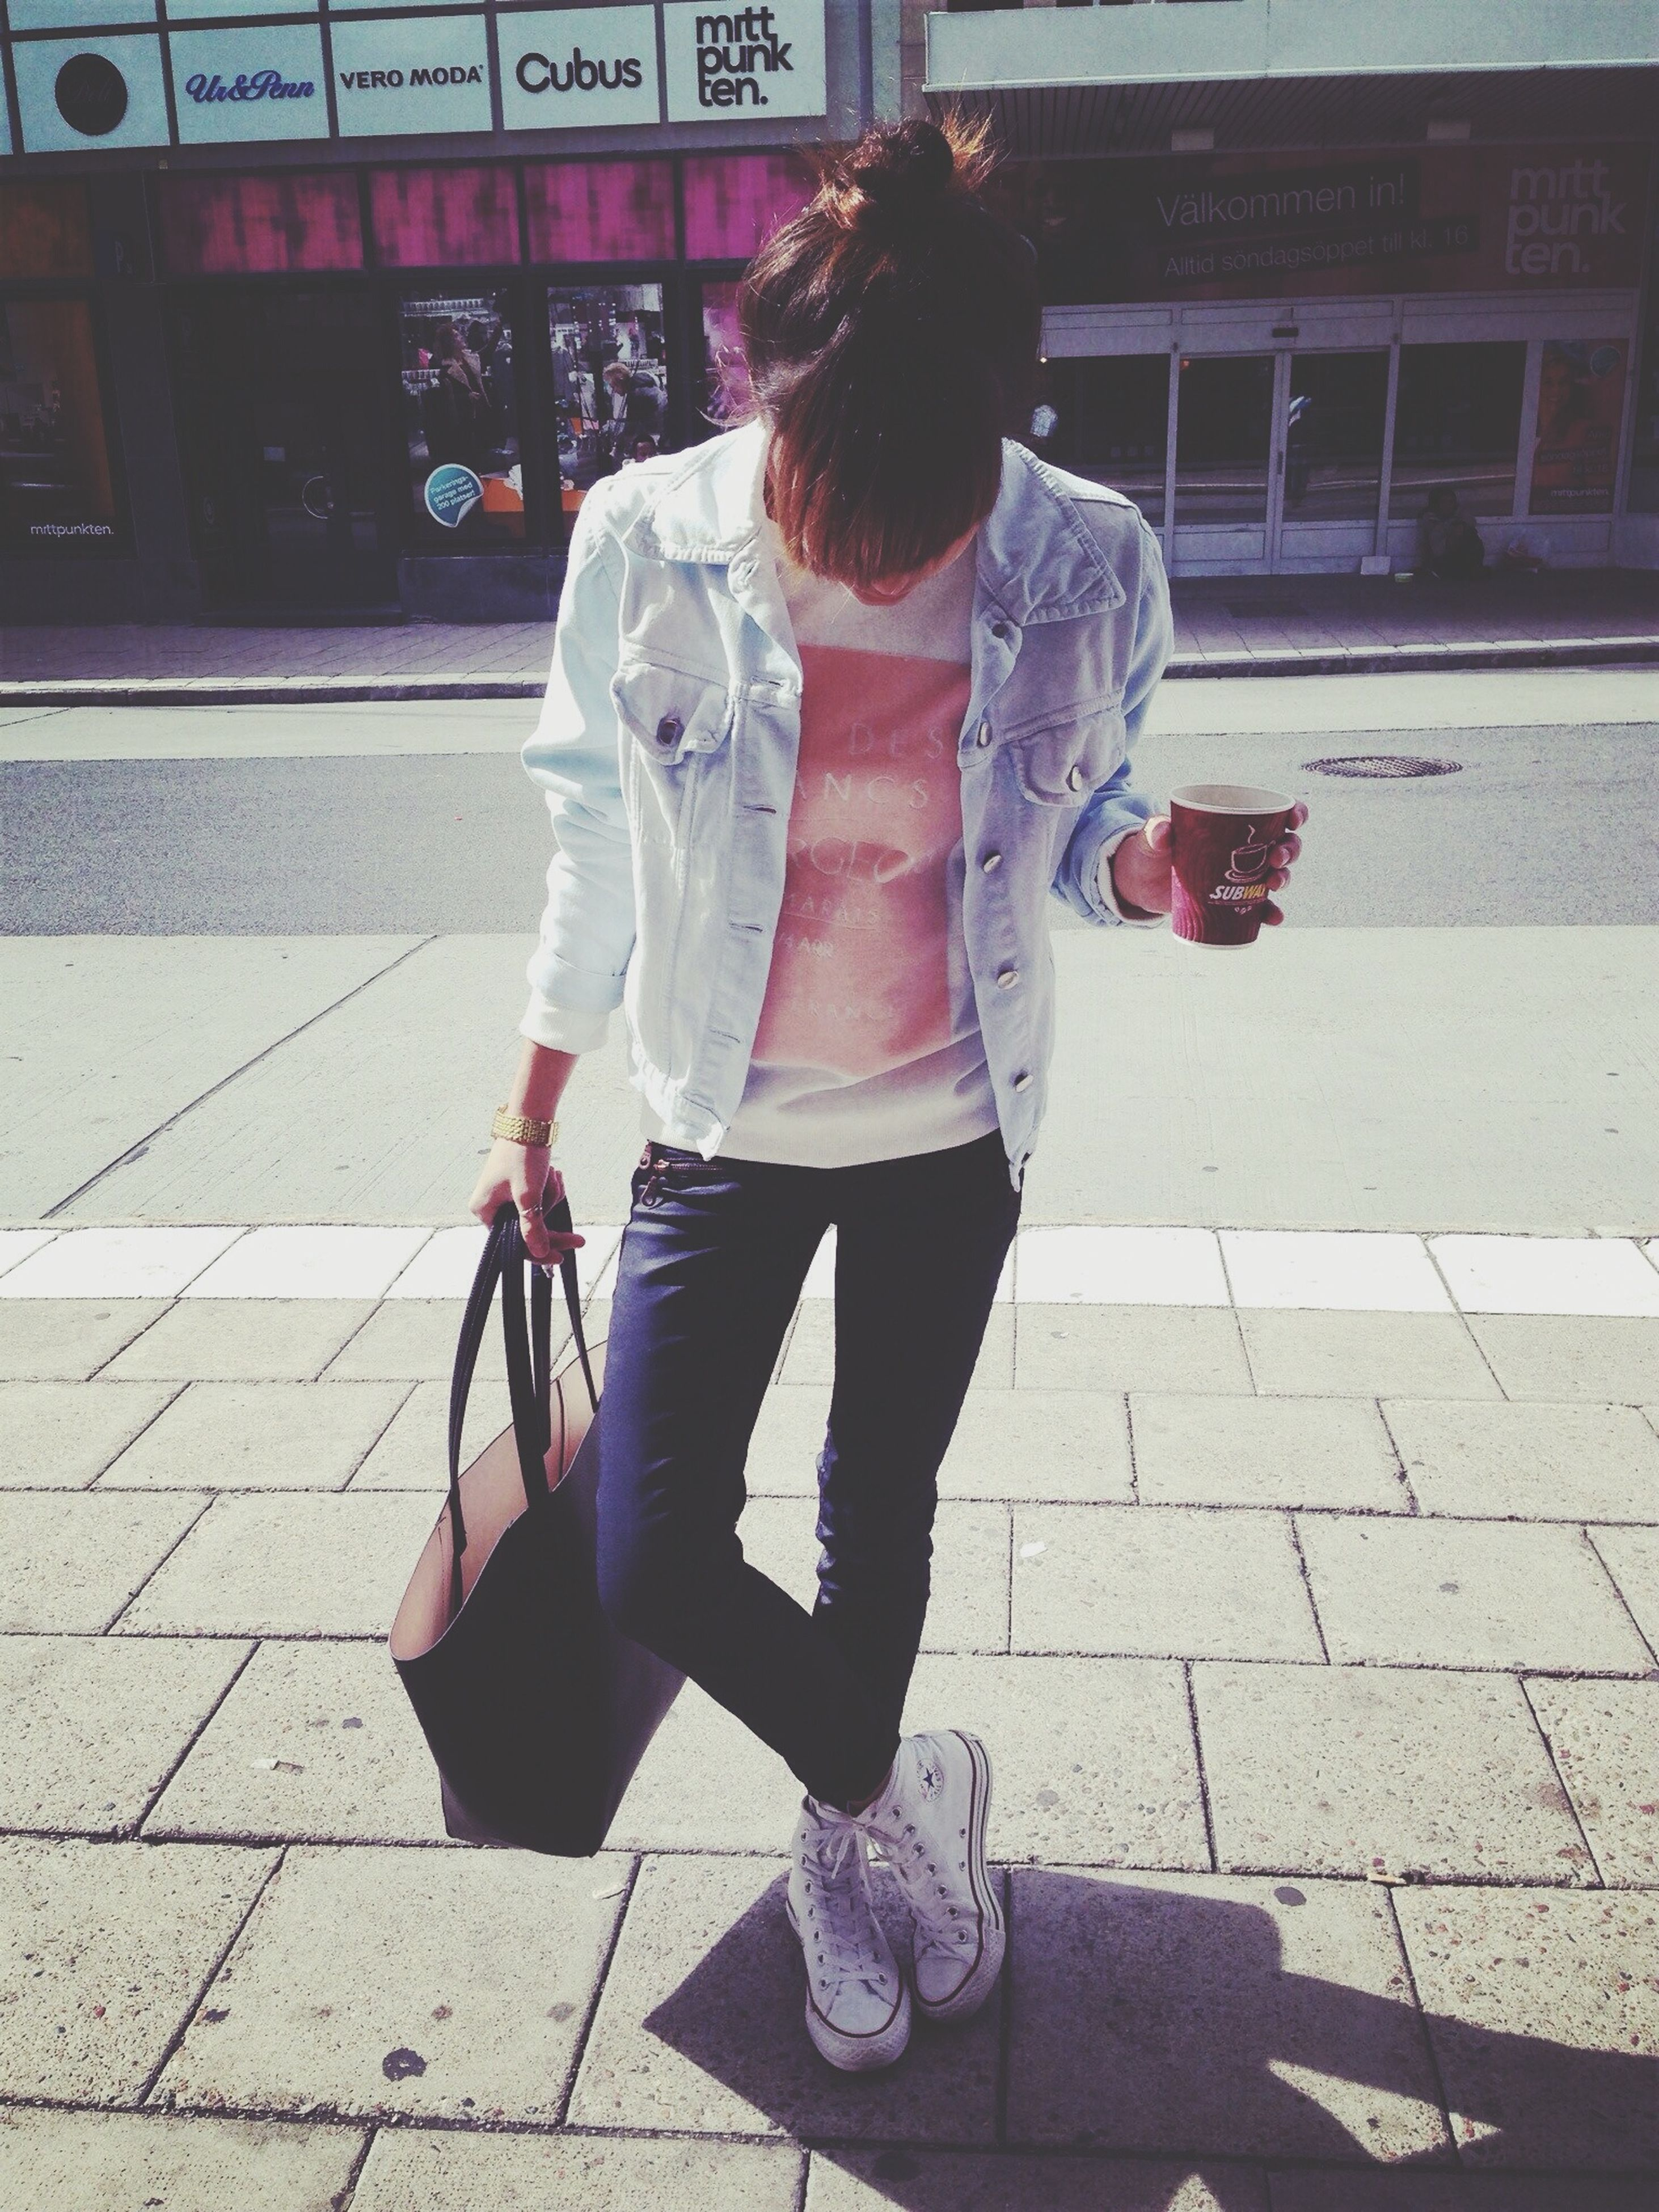 casual clothing, lifestyles, full length, street, leisure activity, standing, holding, front view, sidewalk, transportation, rear view, young adult, person, walking, city life, city, day